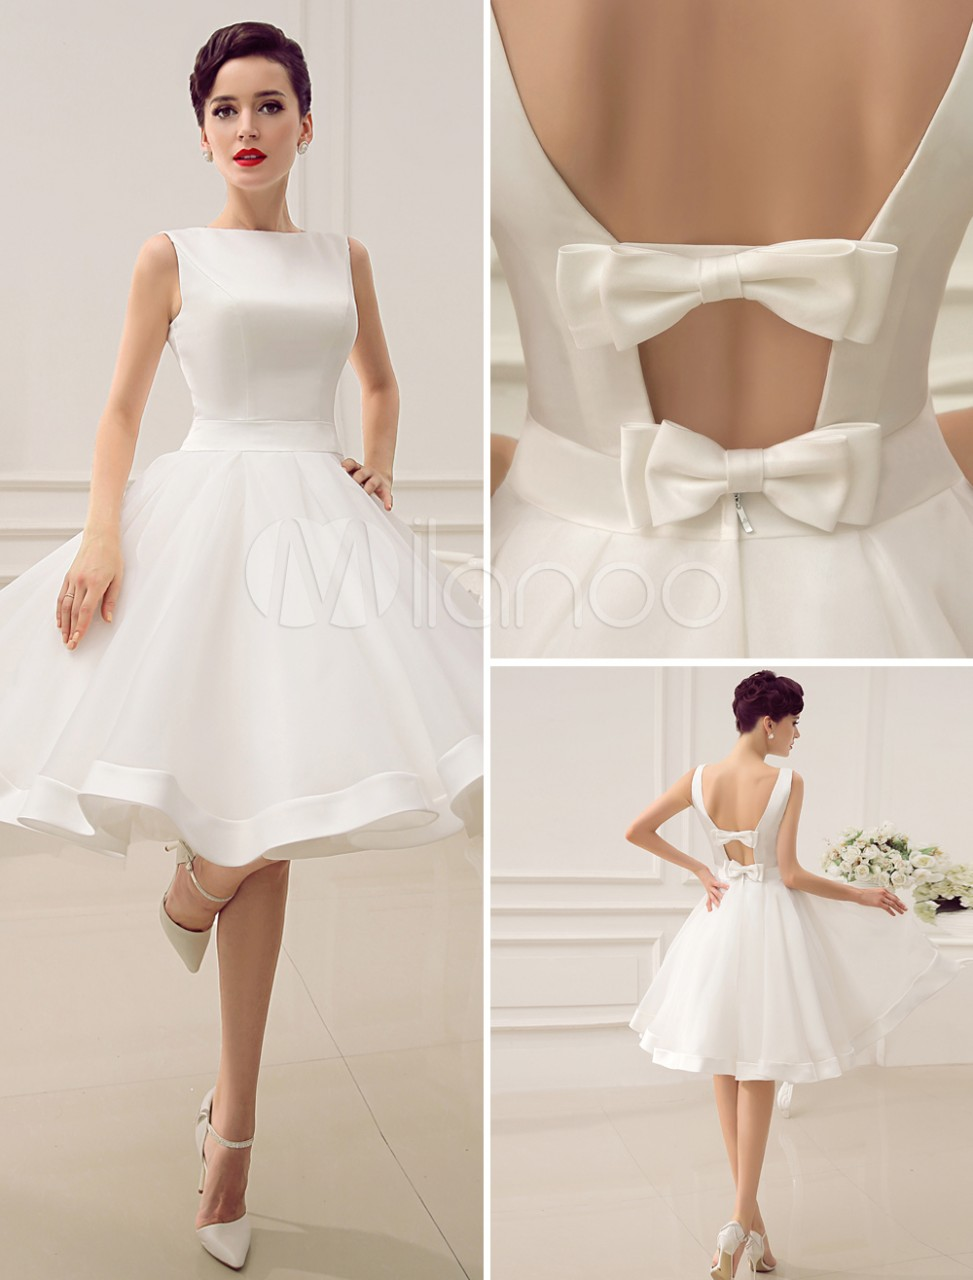 Knee-Length-Ivory-Cut-Out-Wedding-Dress-For-Bride-With-Bow-Decor-466429-2308641